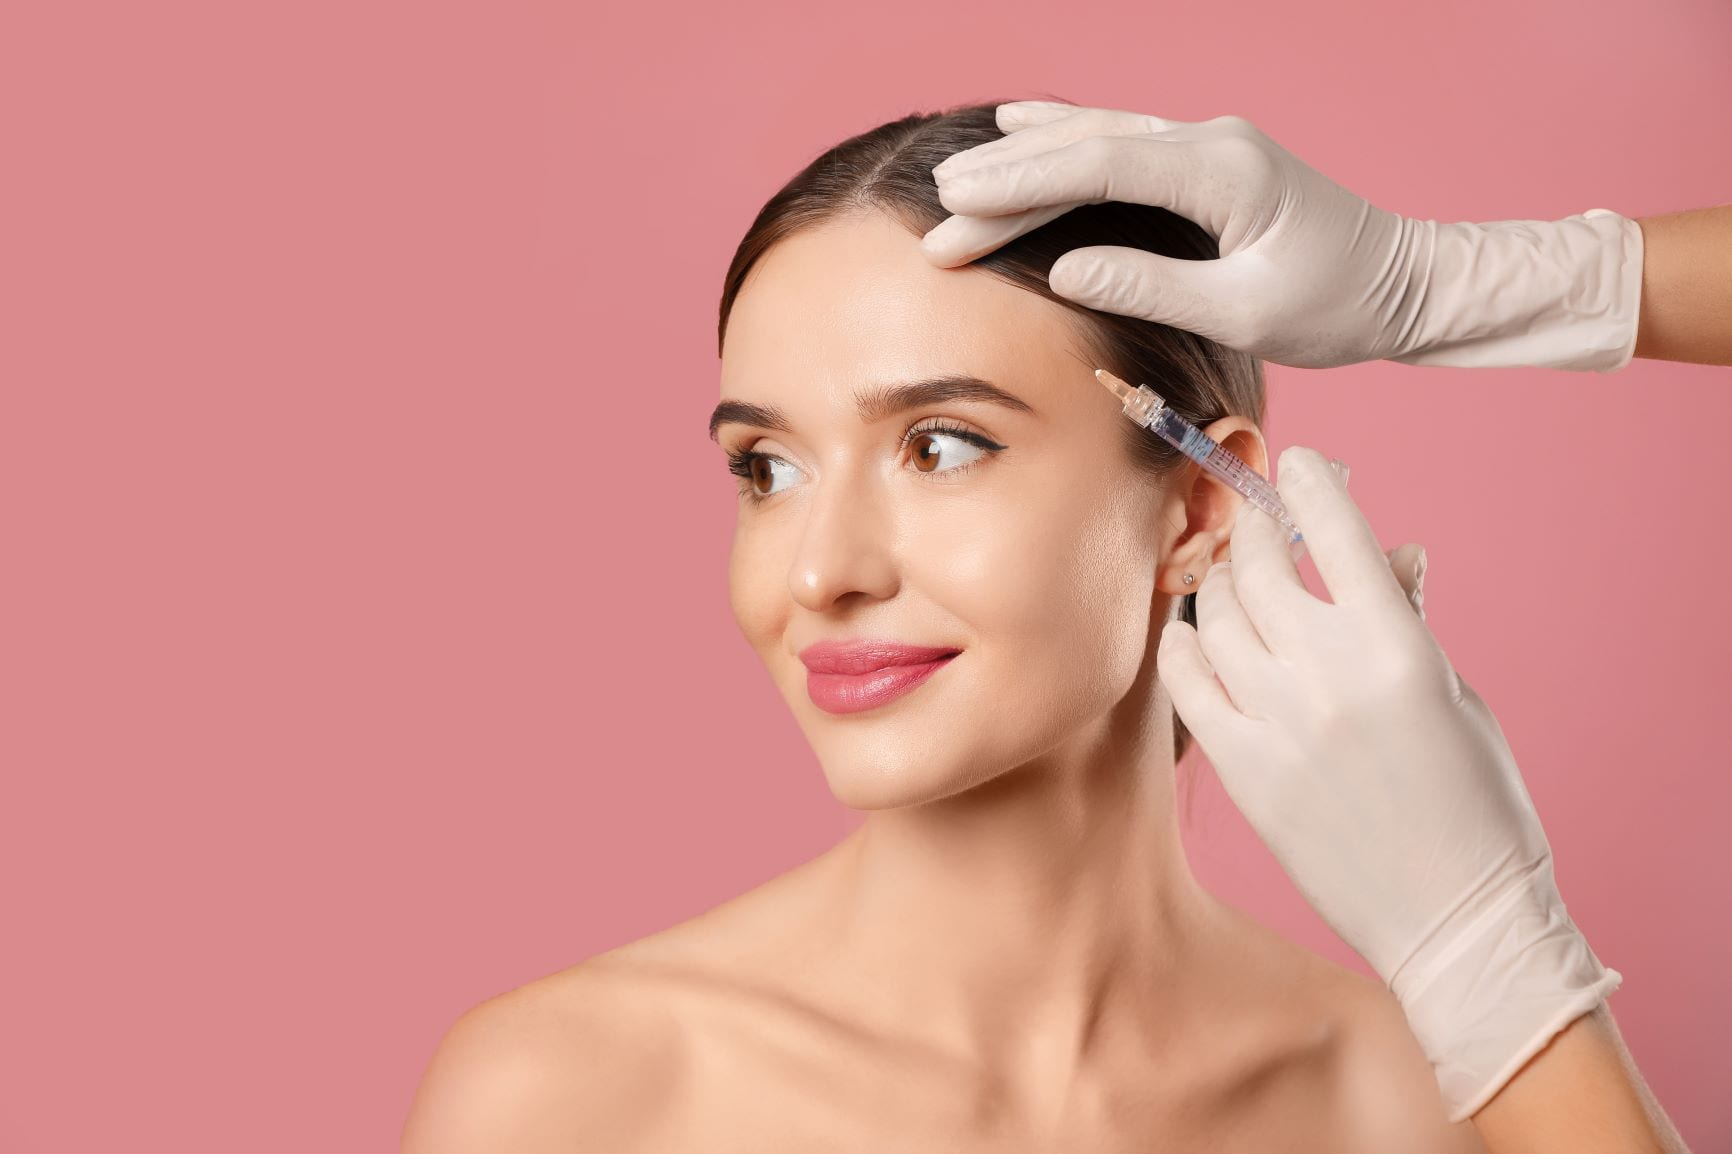 How Much Will My Botox Treatment Cost? How to Budget for Your Best Treatment